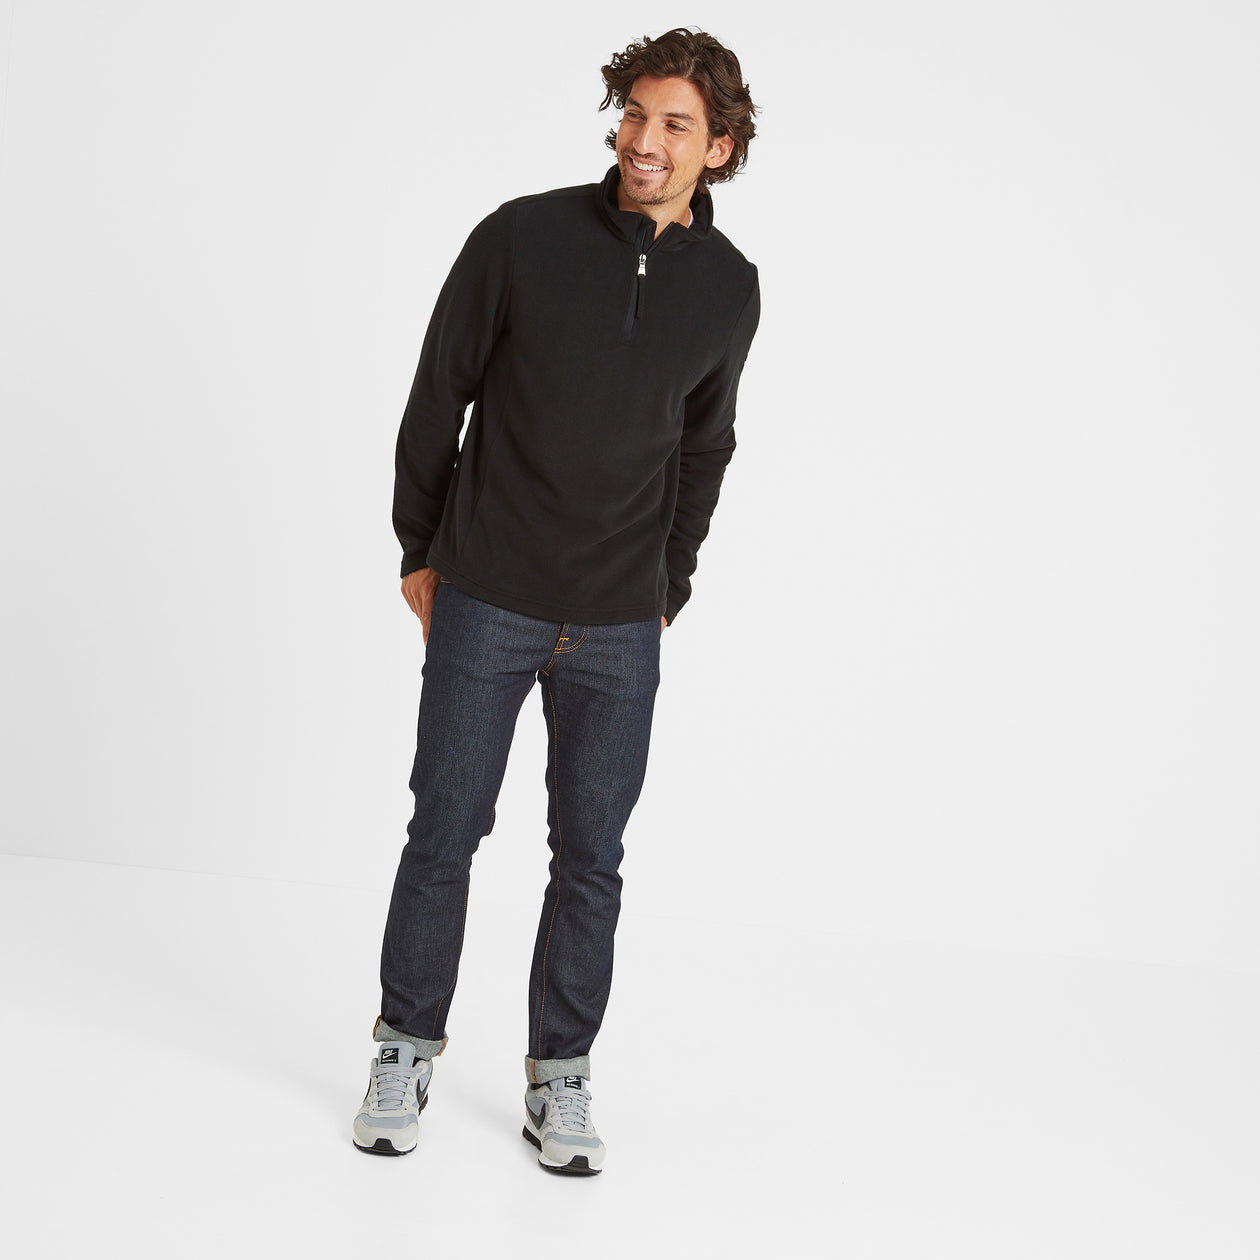 Shire Mens Fleece Zipneck - Black image 4